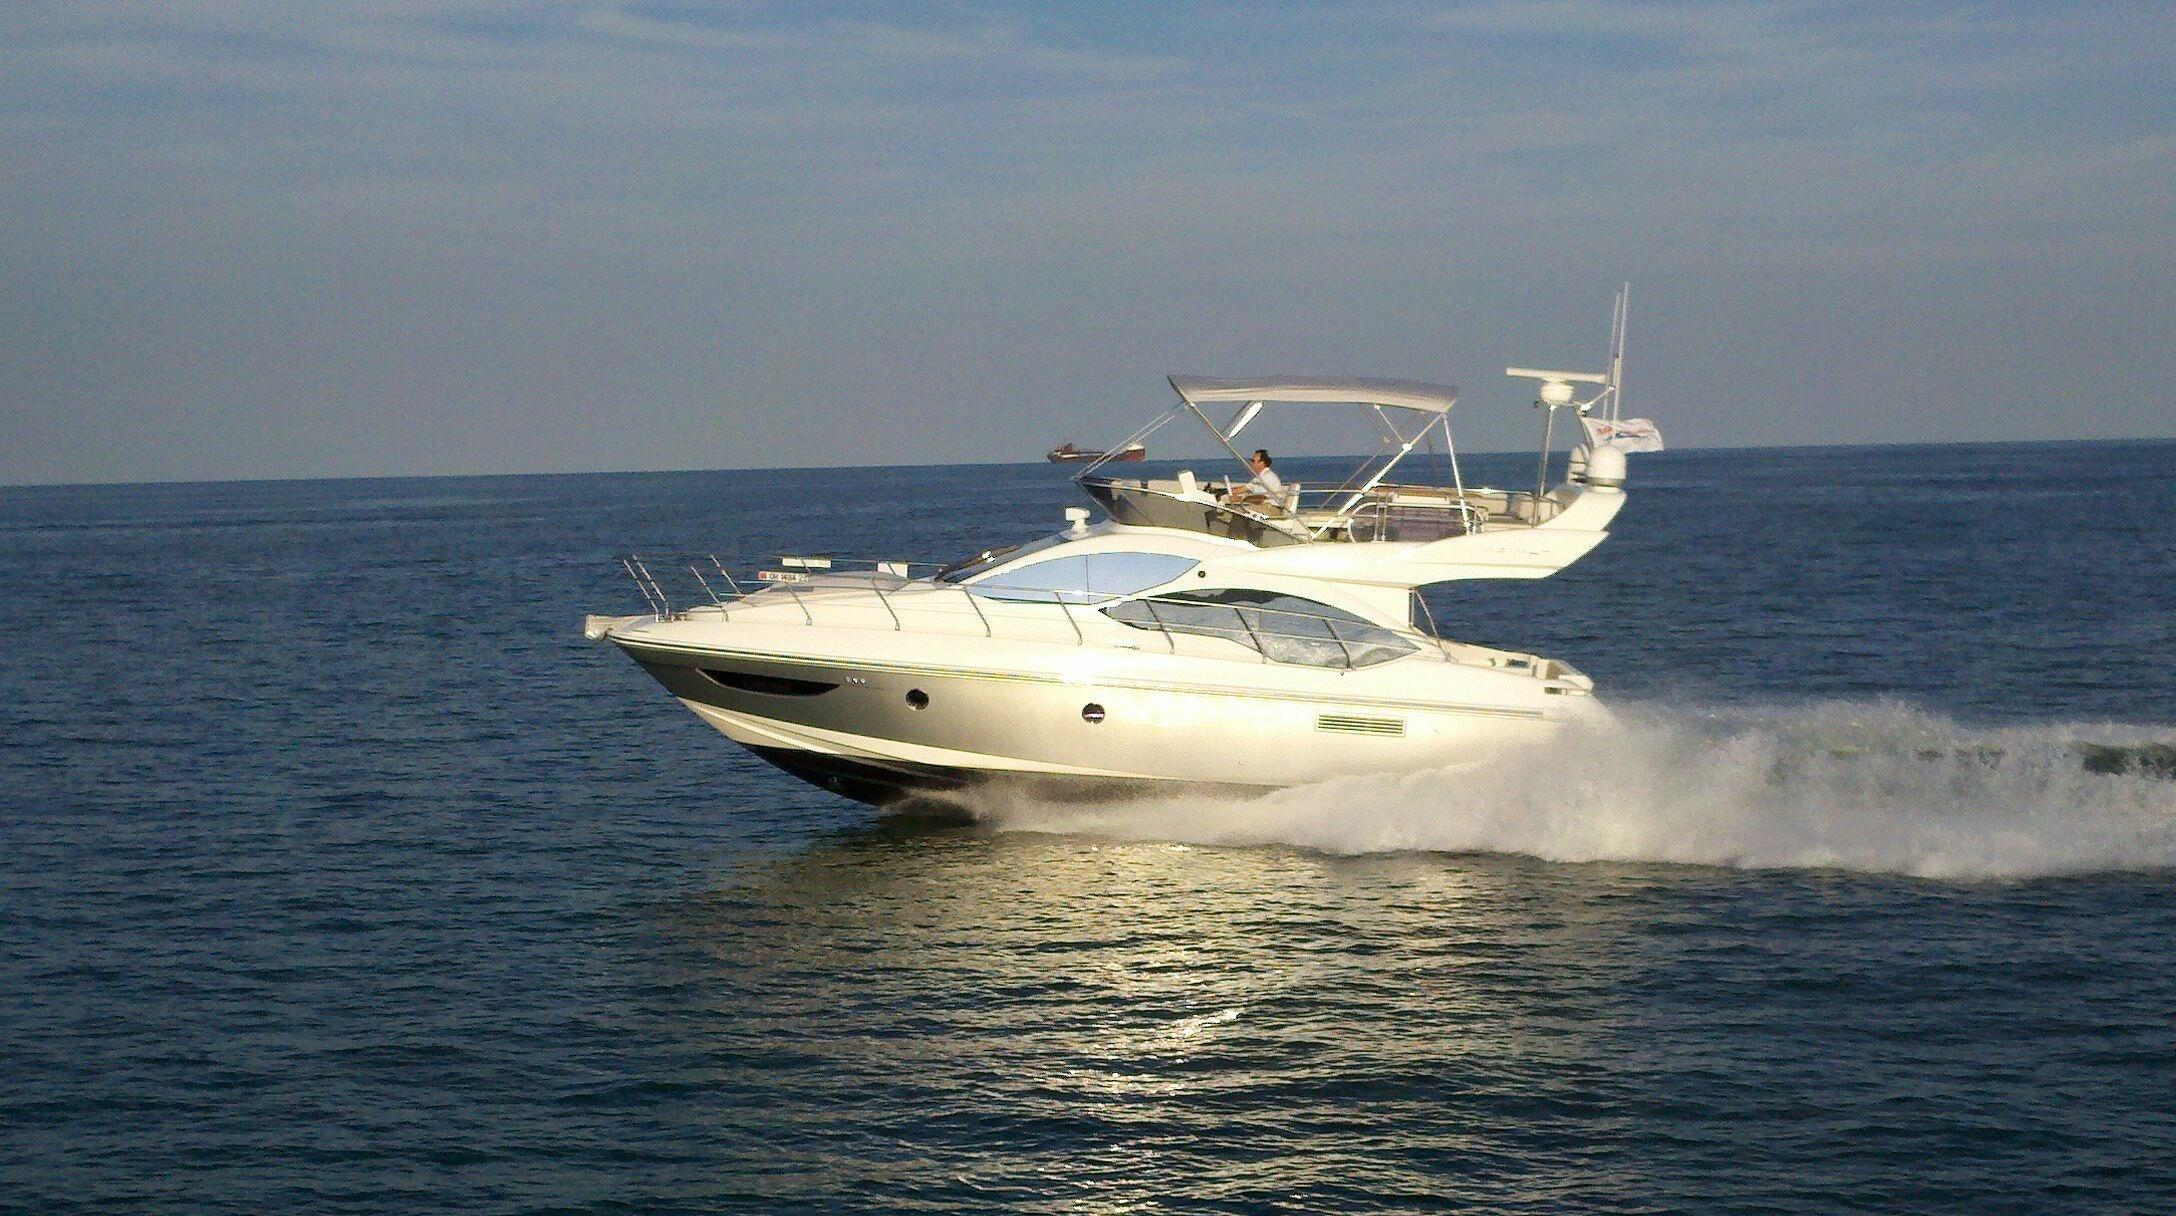 Thumbnail 1 for 2013 Azimut 45 fly